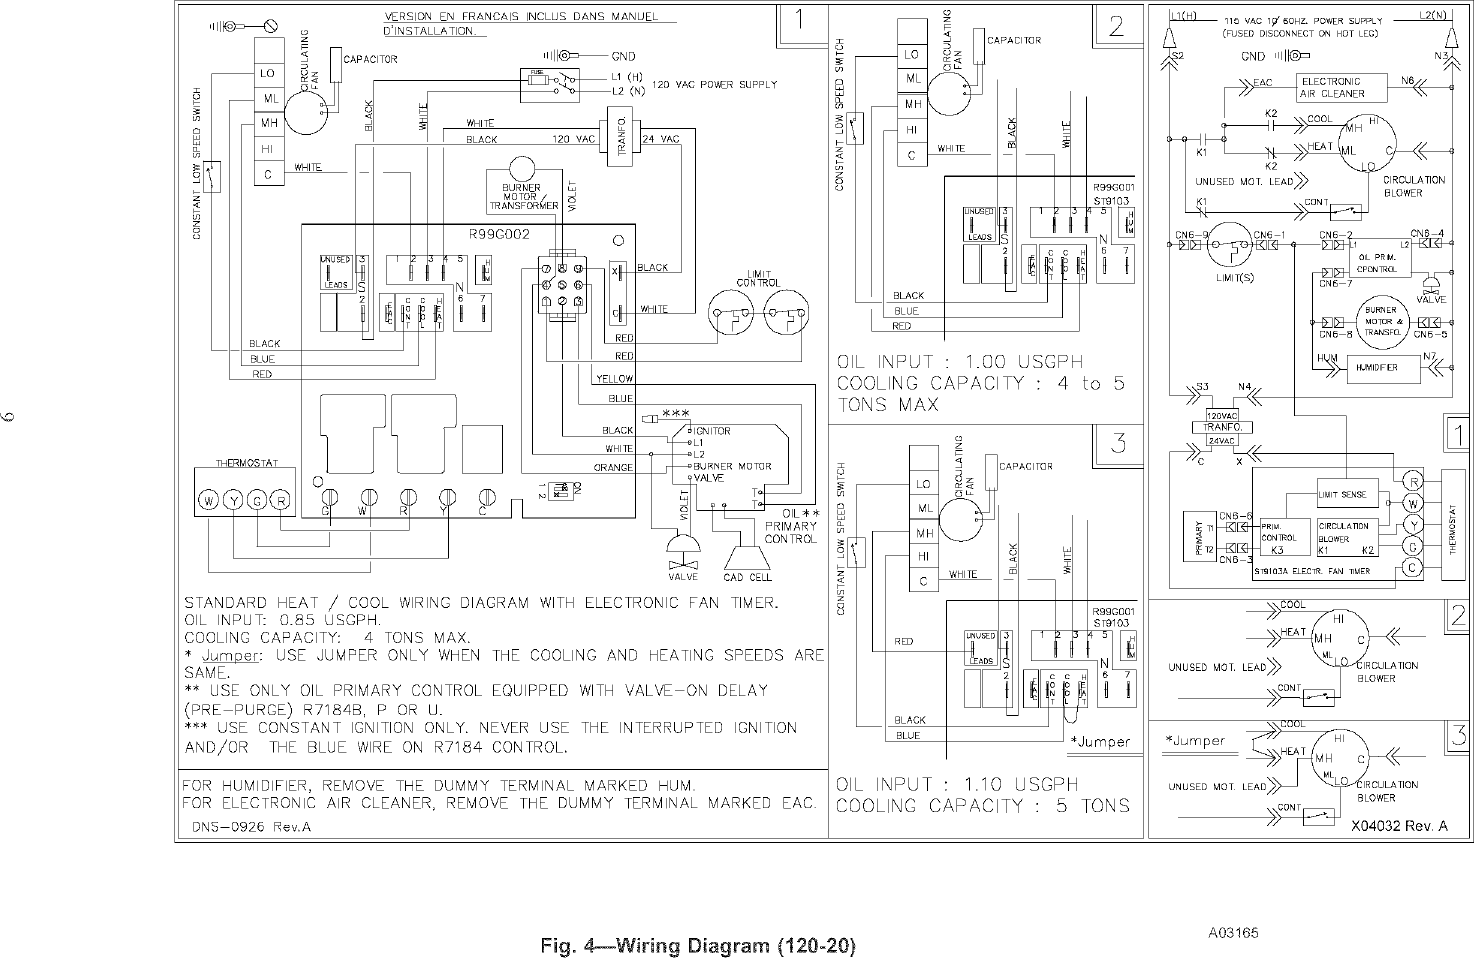 Wiring Diagram PDF: 10 Yr Old Carrier Wiring Diagram